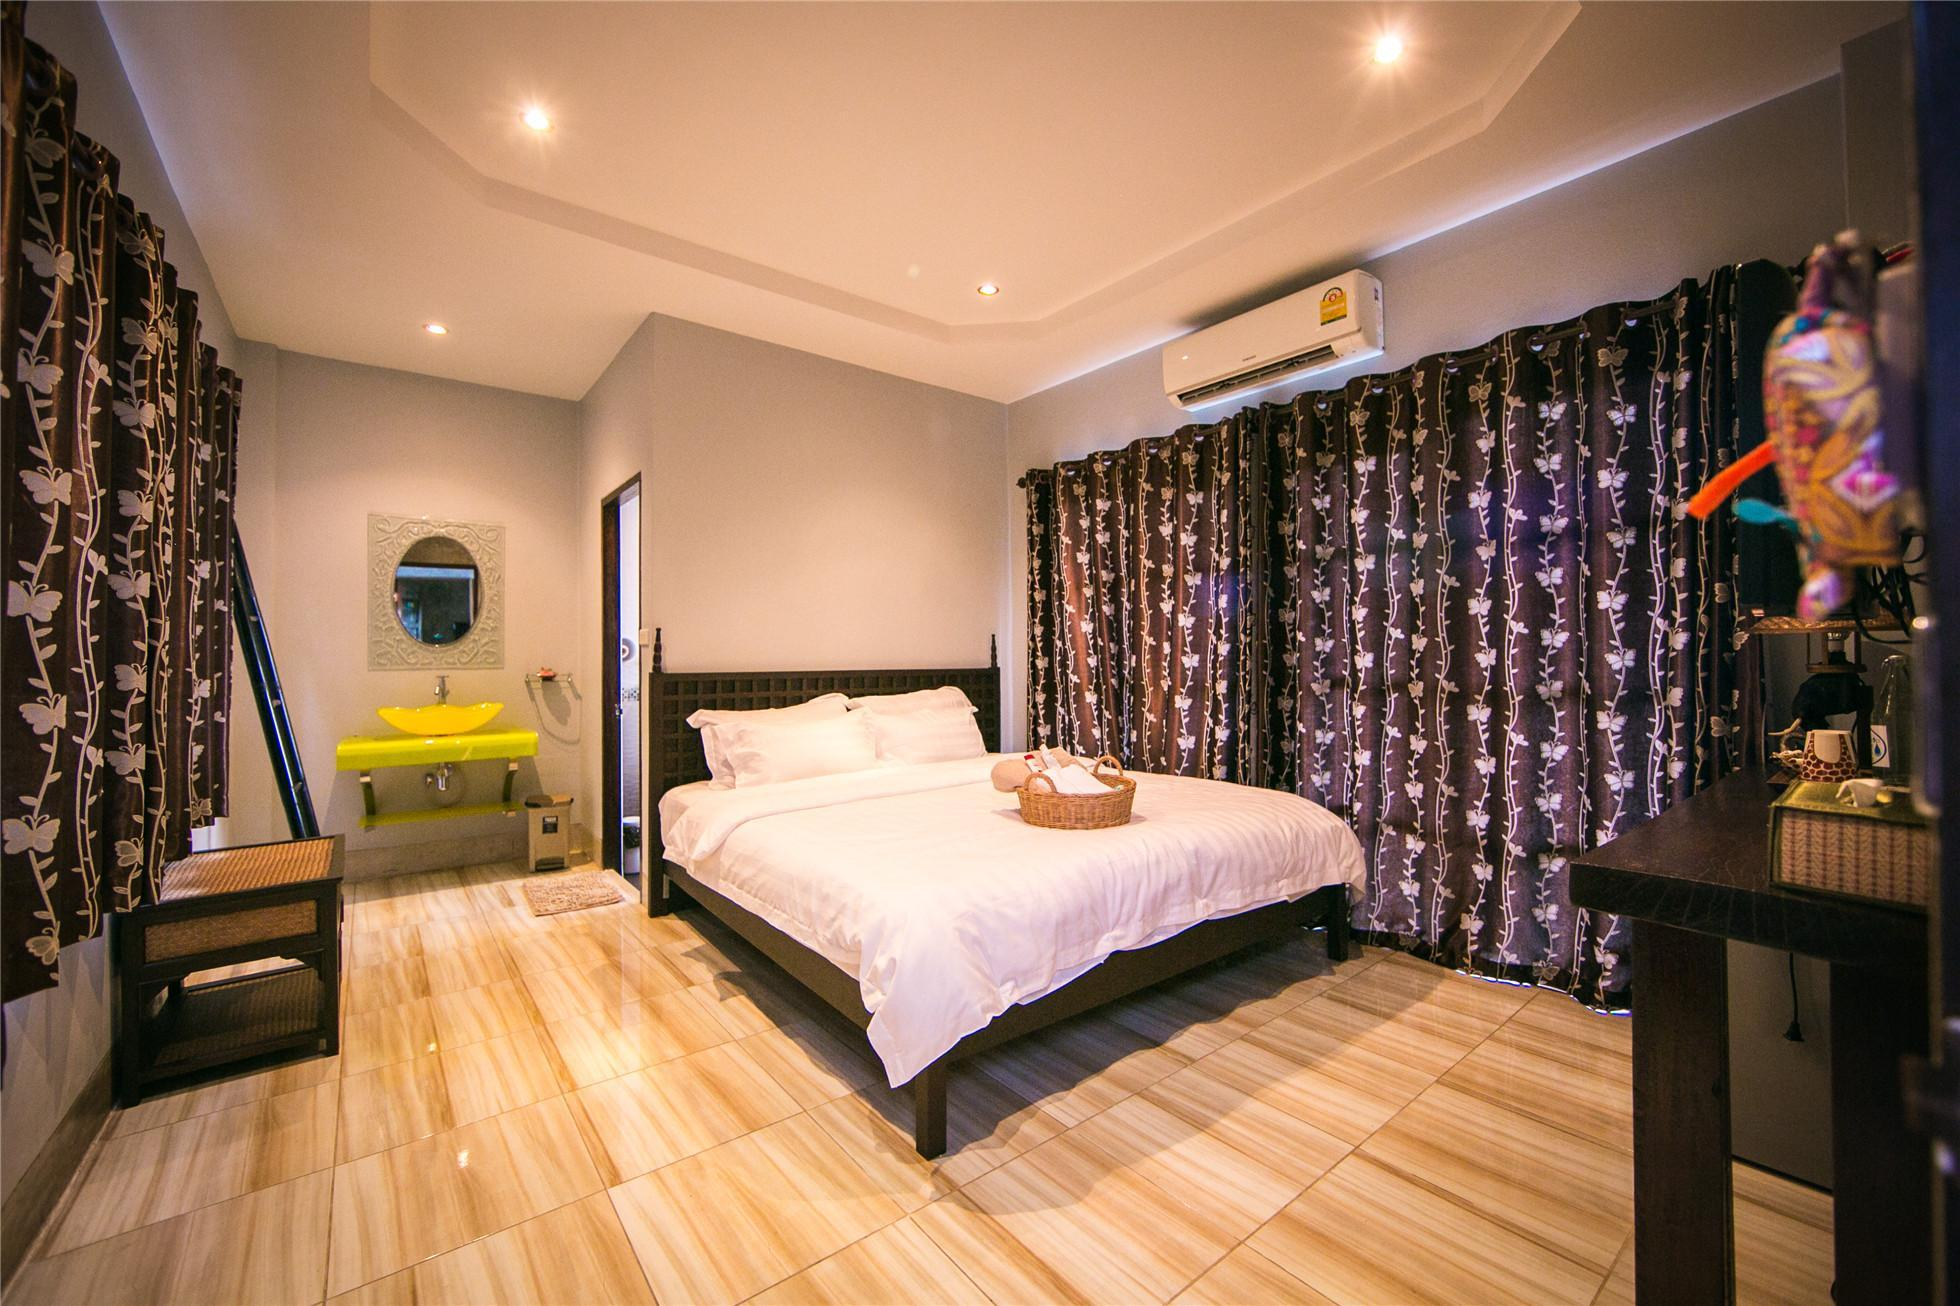 King 1 Kamar Tidur Suite Executive (King 1 Bed Room Executive Suite)